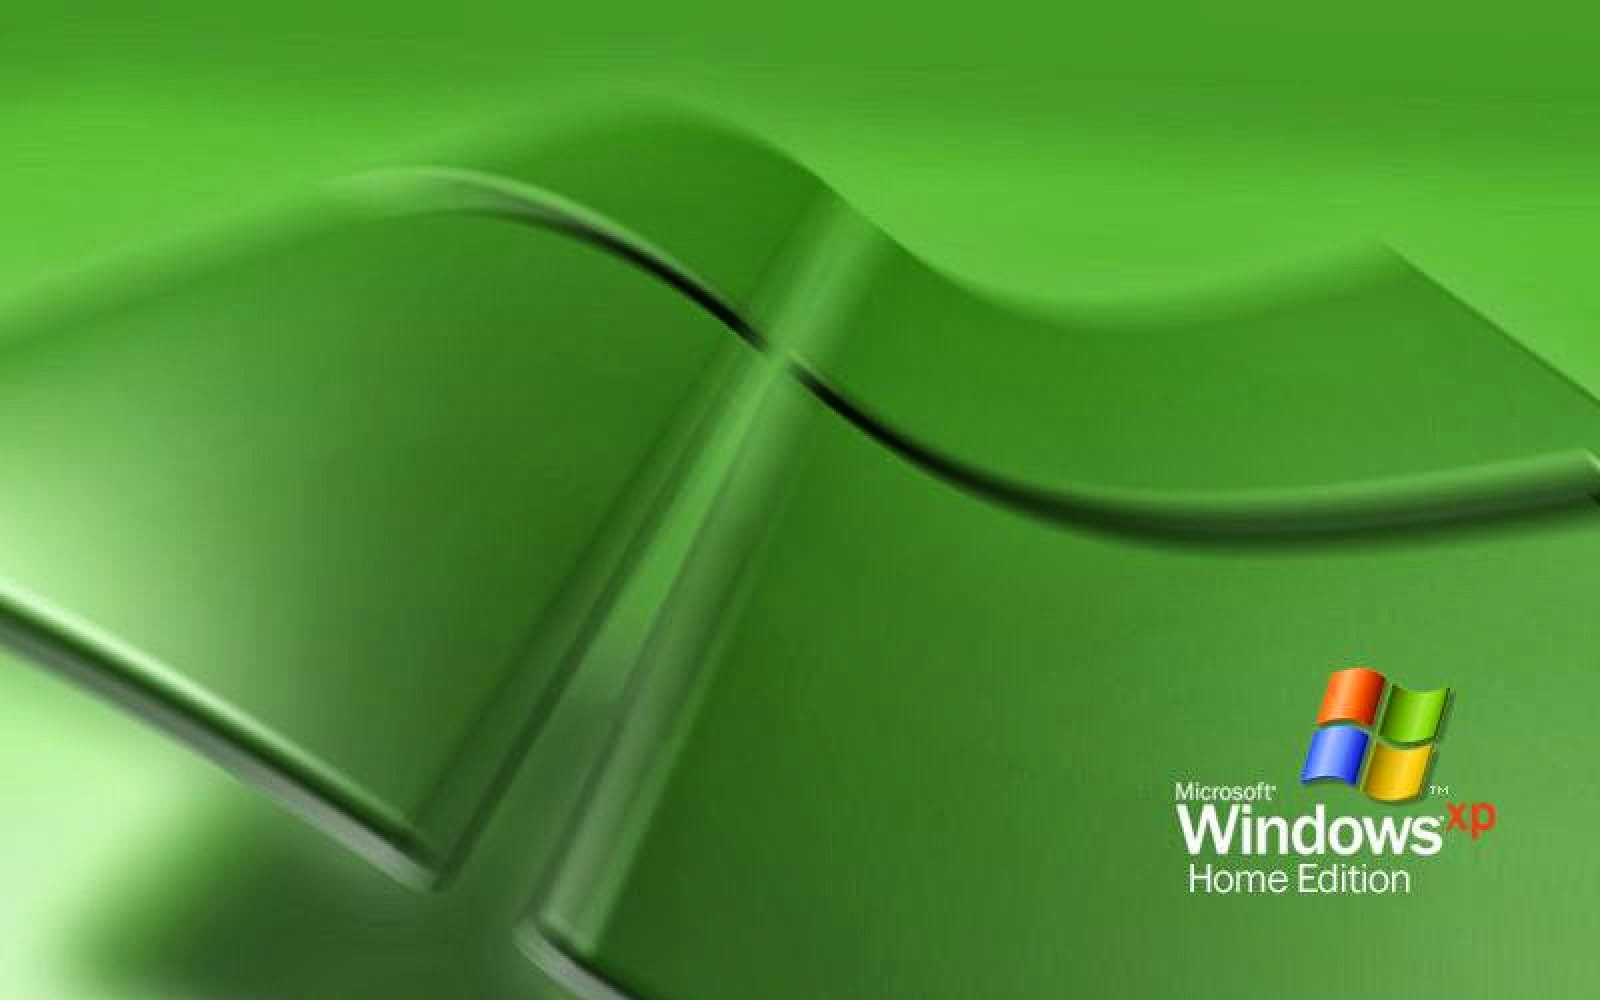 Desktop wallpapers for windows xp 70 wallpapers hd for 80s wallpaper home